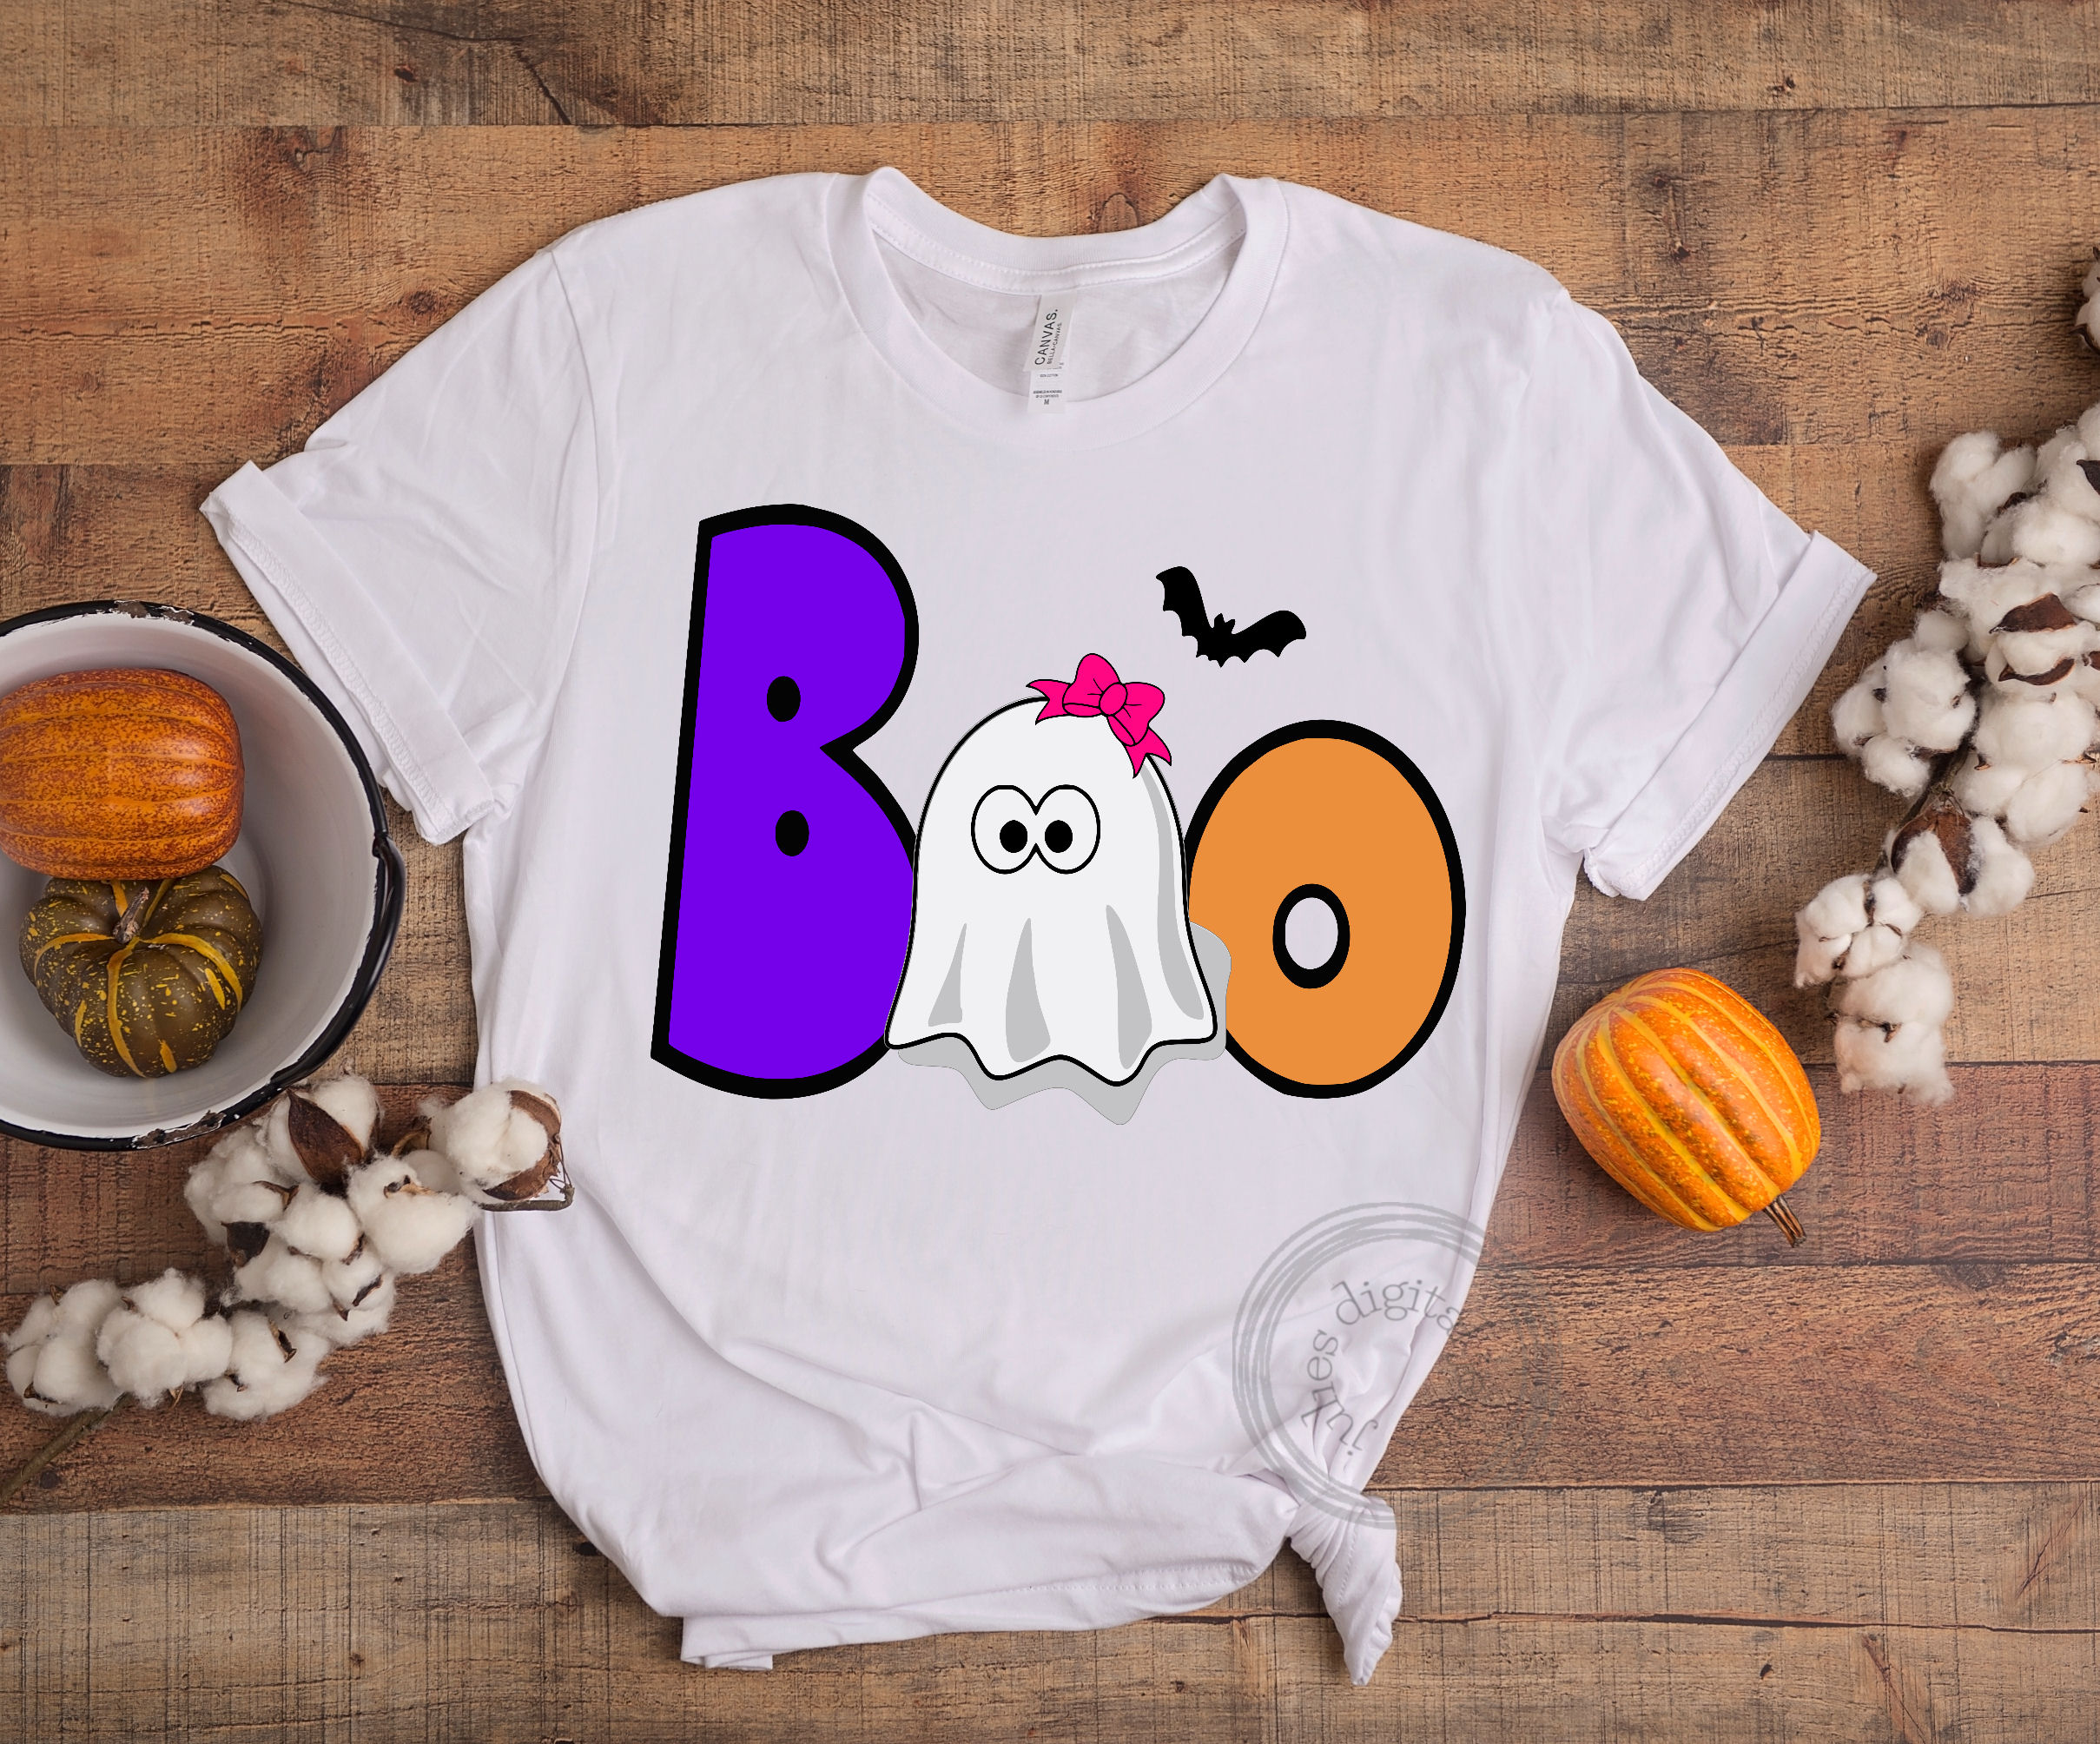 Boo girl ghost SVG, Halloween svg, by Julies digital jems example image 3